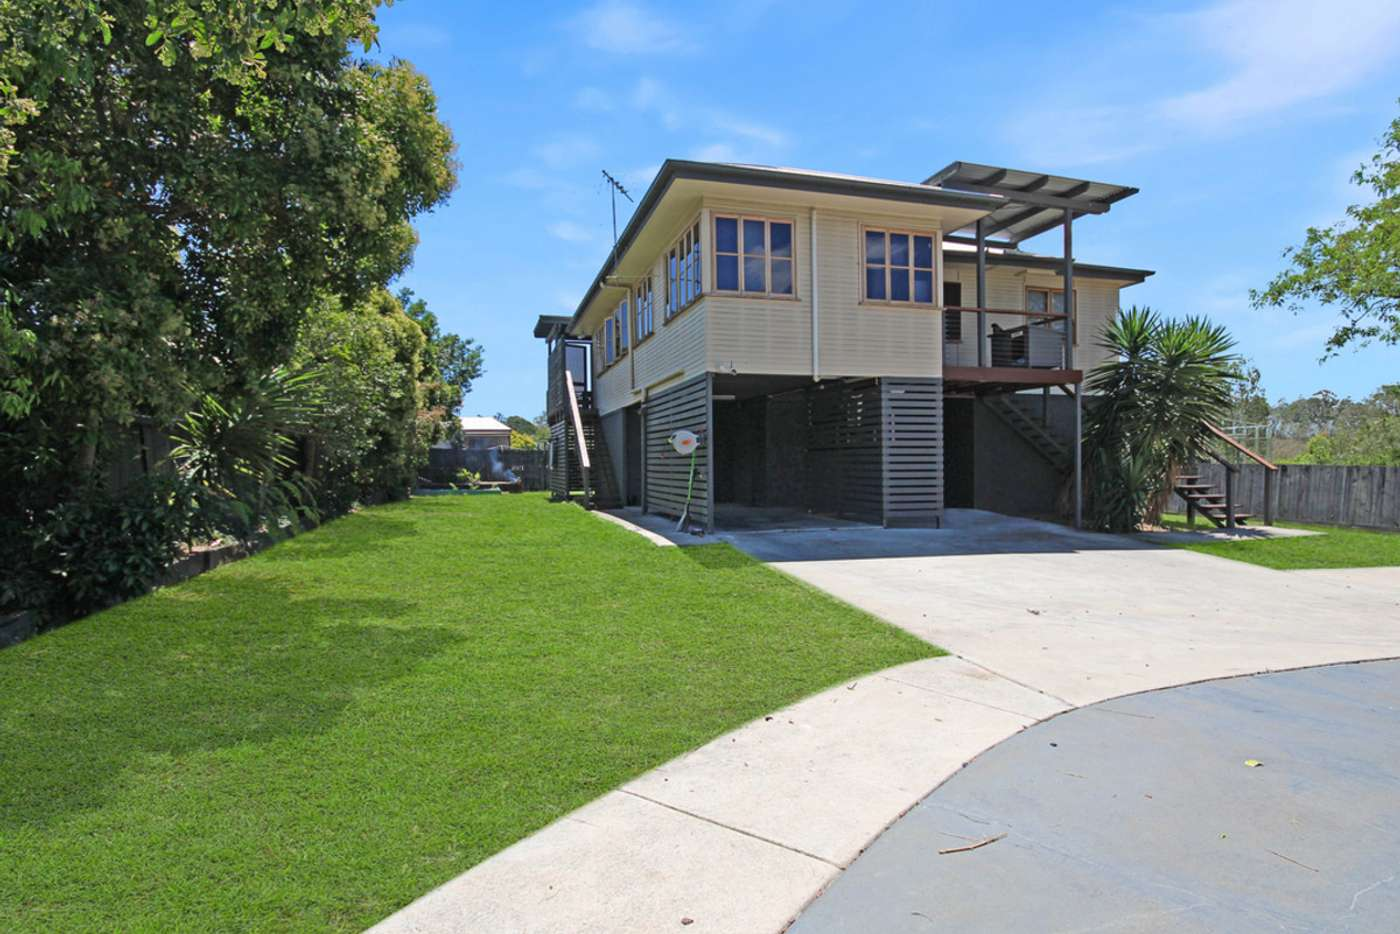 Main view of Homely house listing, 41 Haig Street, Brassall QLD 4305